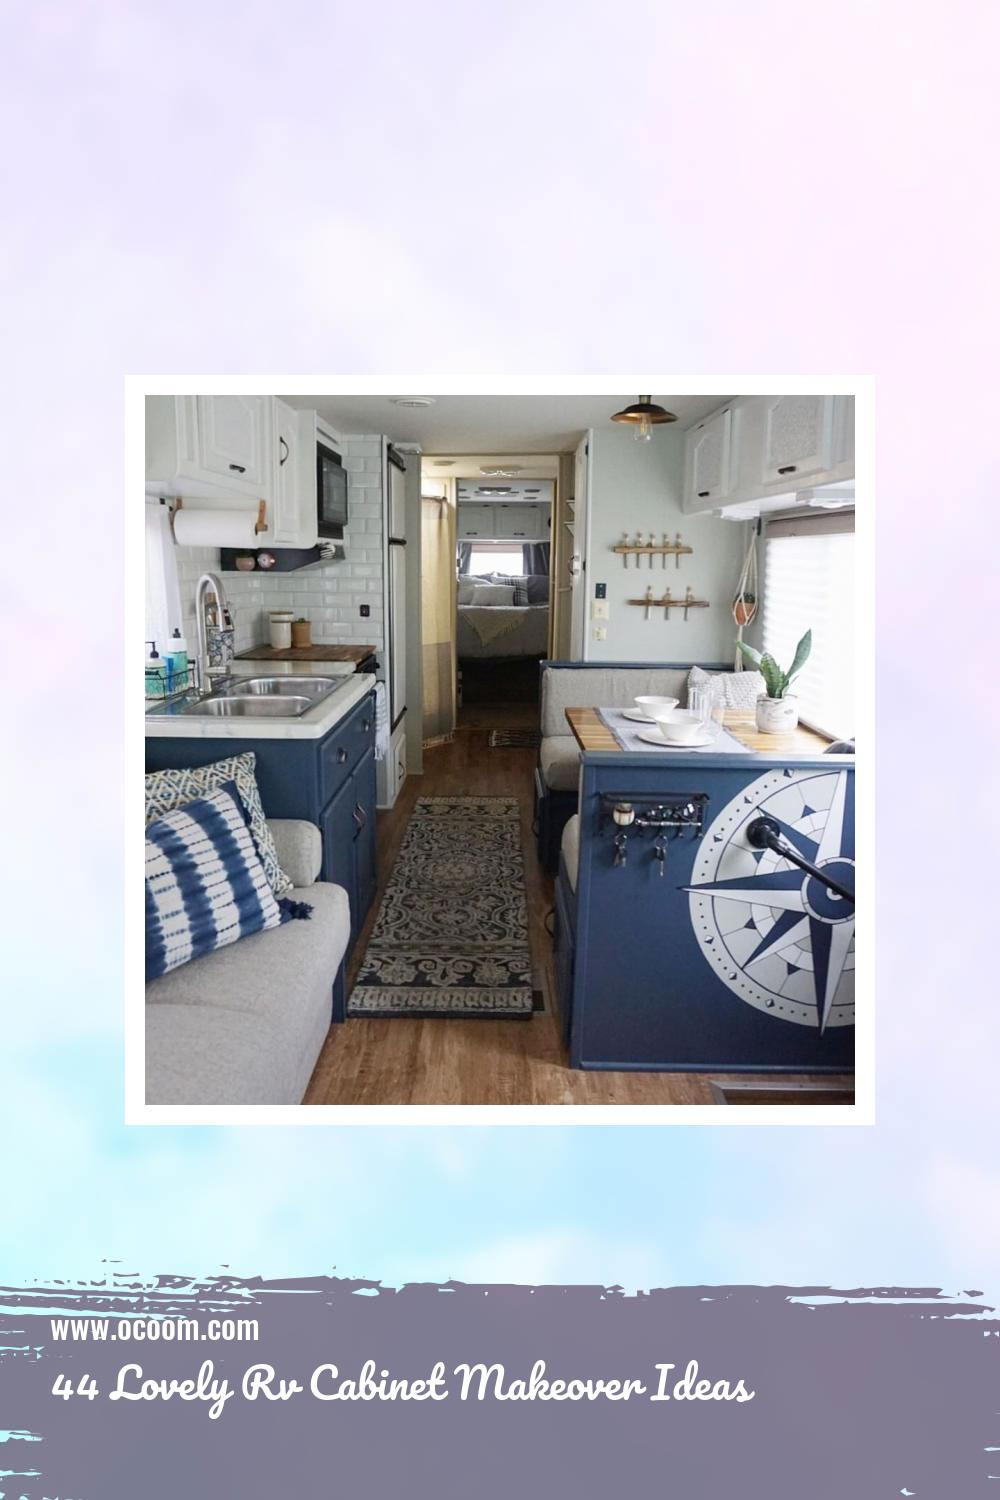 44 Lovely Rv Cabinet Makeover Ideas 39